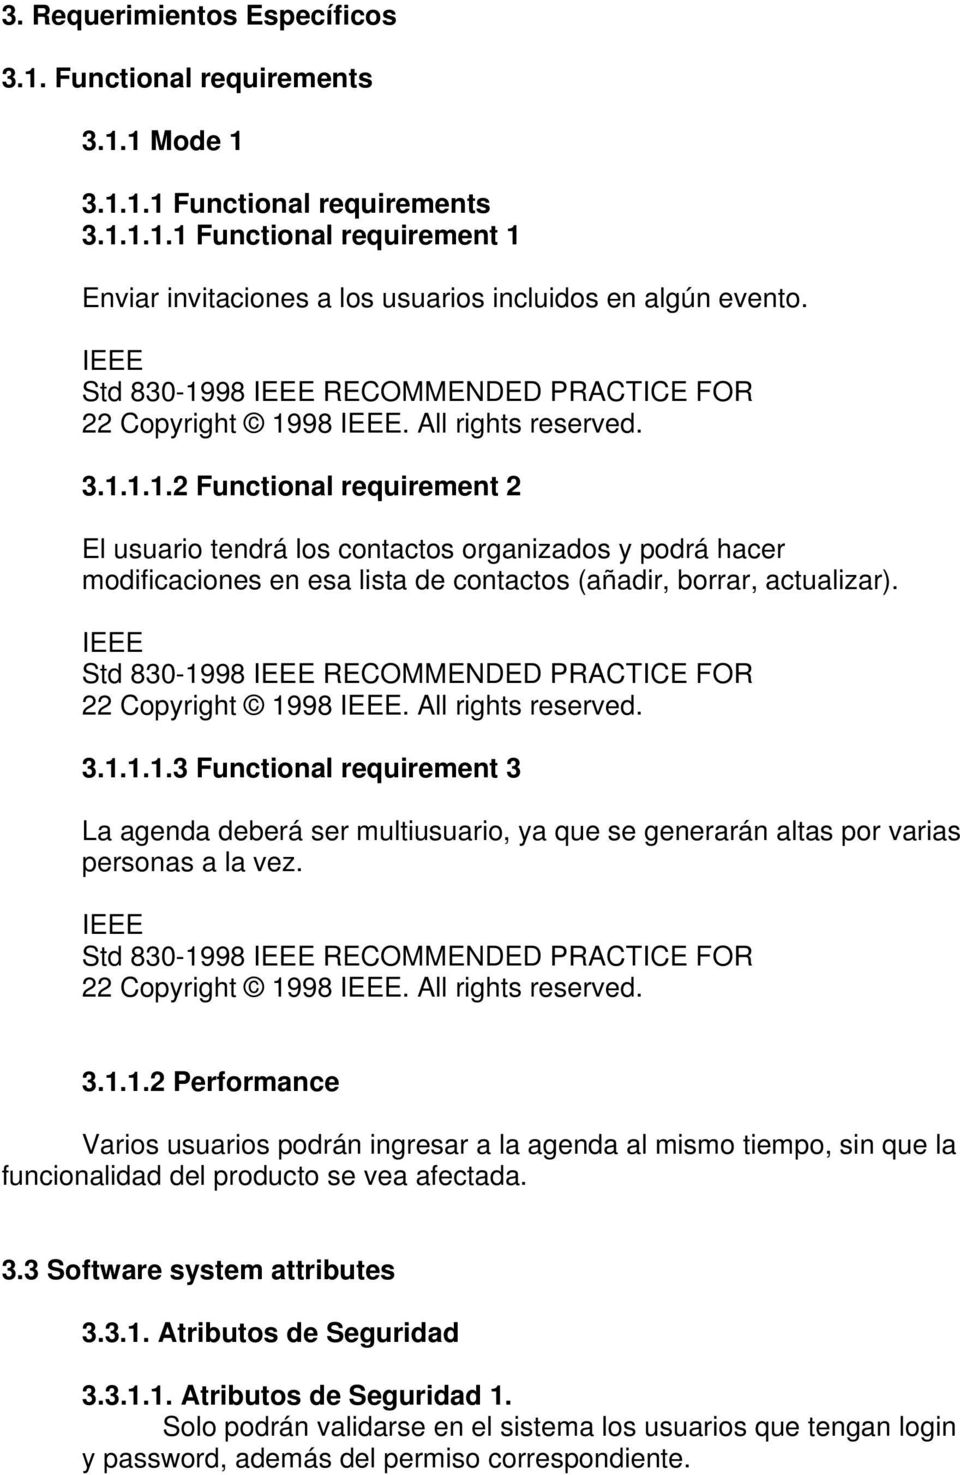 IEEE Std 830-1998 IEEE RECOMMENDED PRACTICE FOR 22 Copyright 1998 IEEE. All rights reserved. 3.1.1.1.3 Functional requirement 3 La agenda deberá ser multiusuario, ya que se generarán altas por varias personas a la vez.